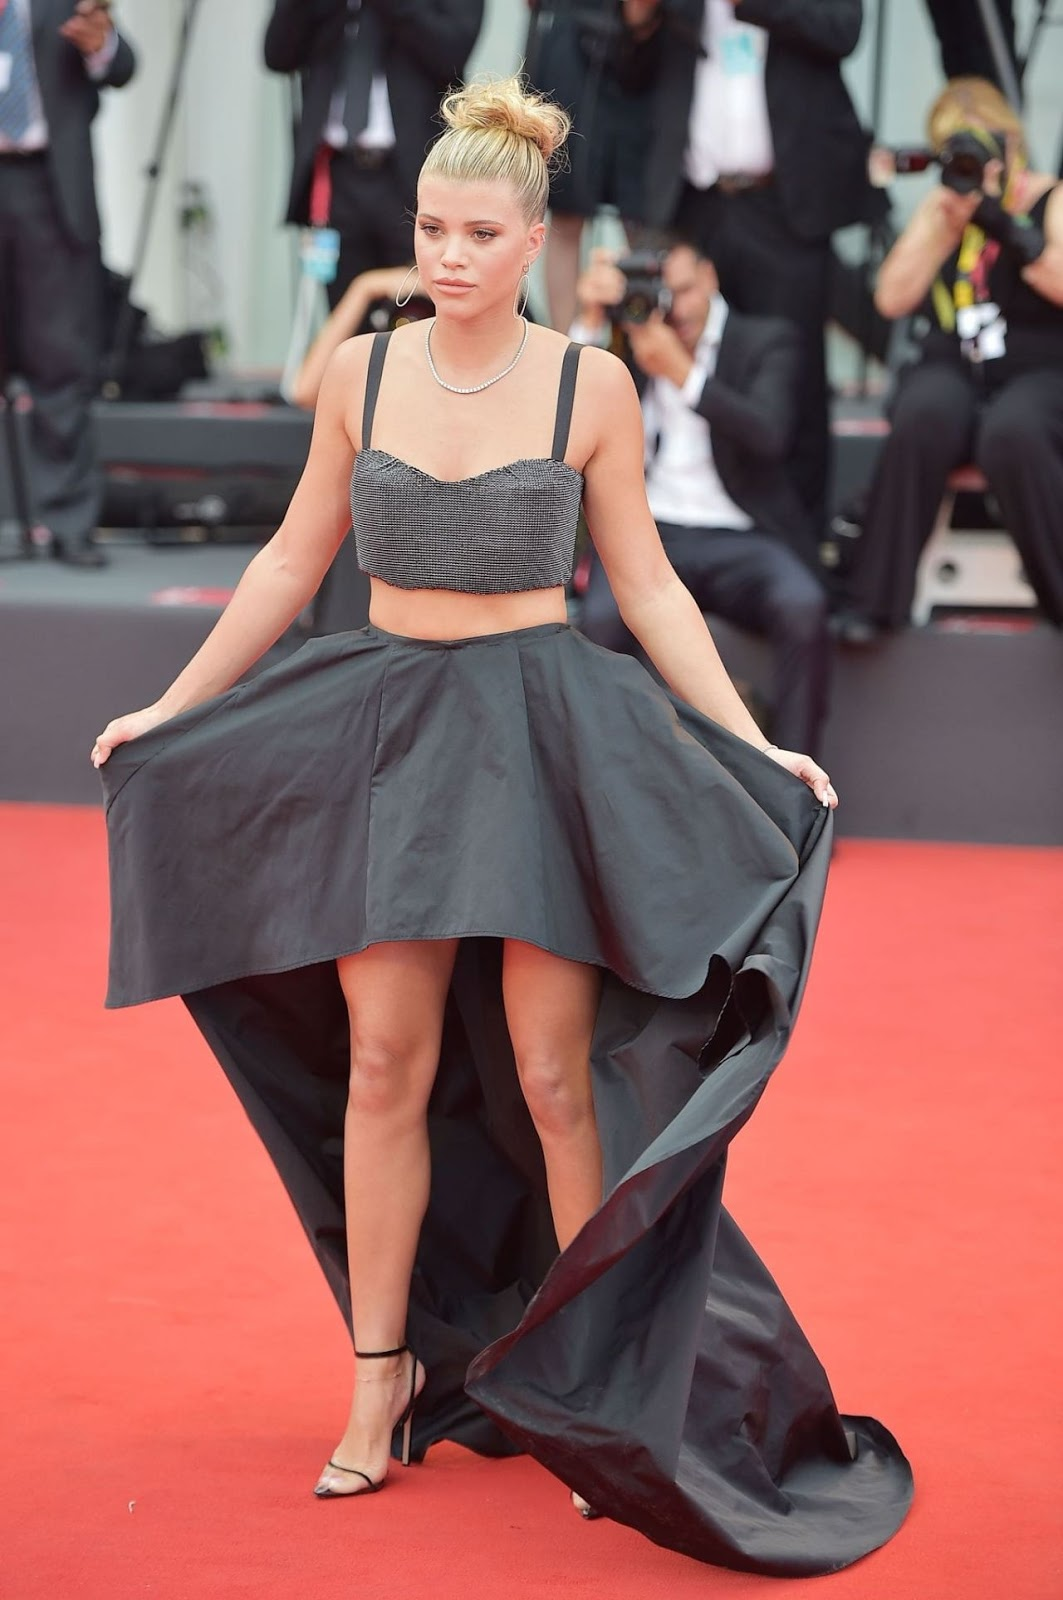 Sofia Richie parades her toned abs in a black sequinned bralet as she leads the star-studded arrivals for the Venice Film Festival opening gala